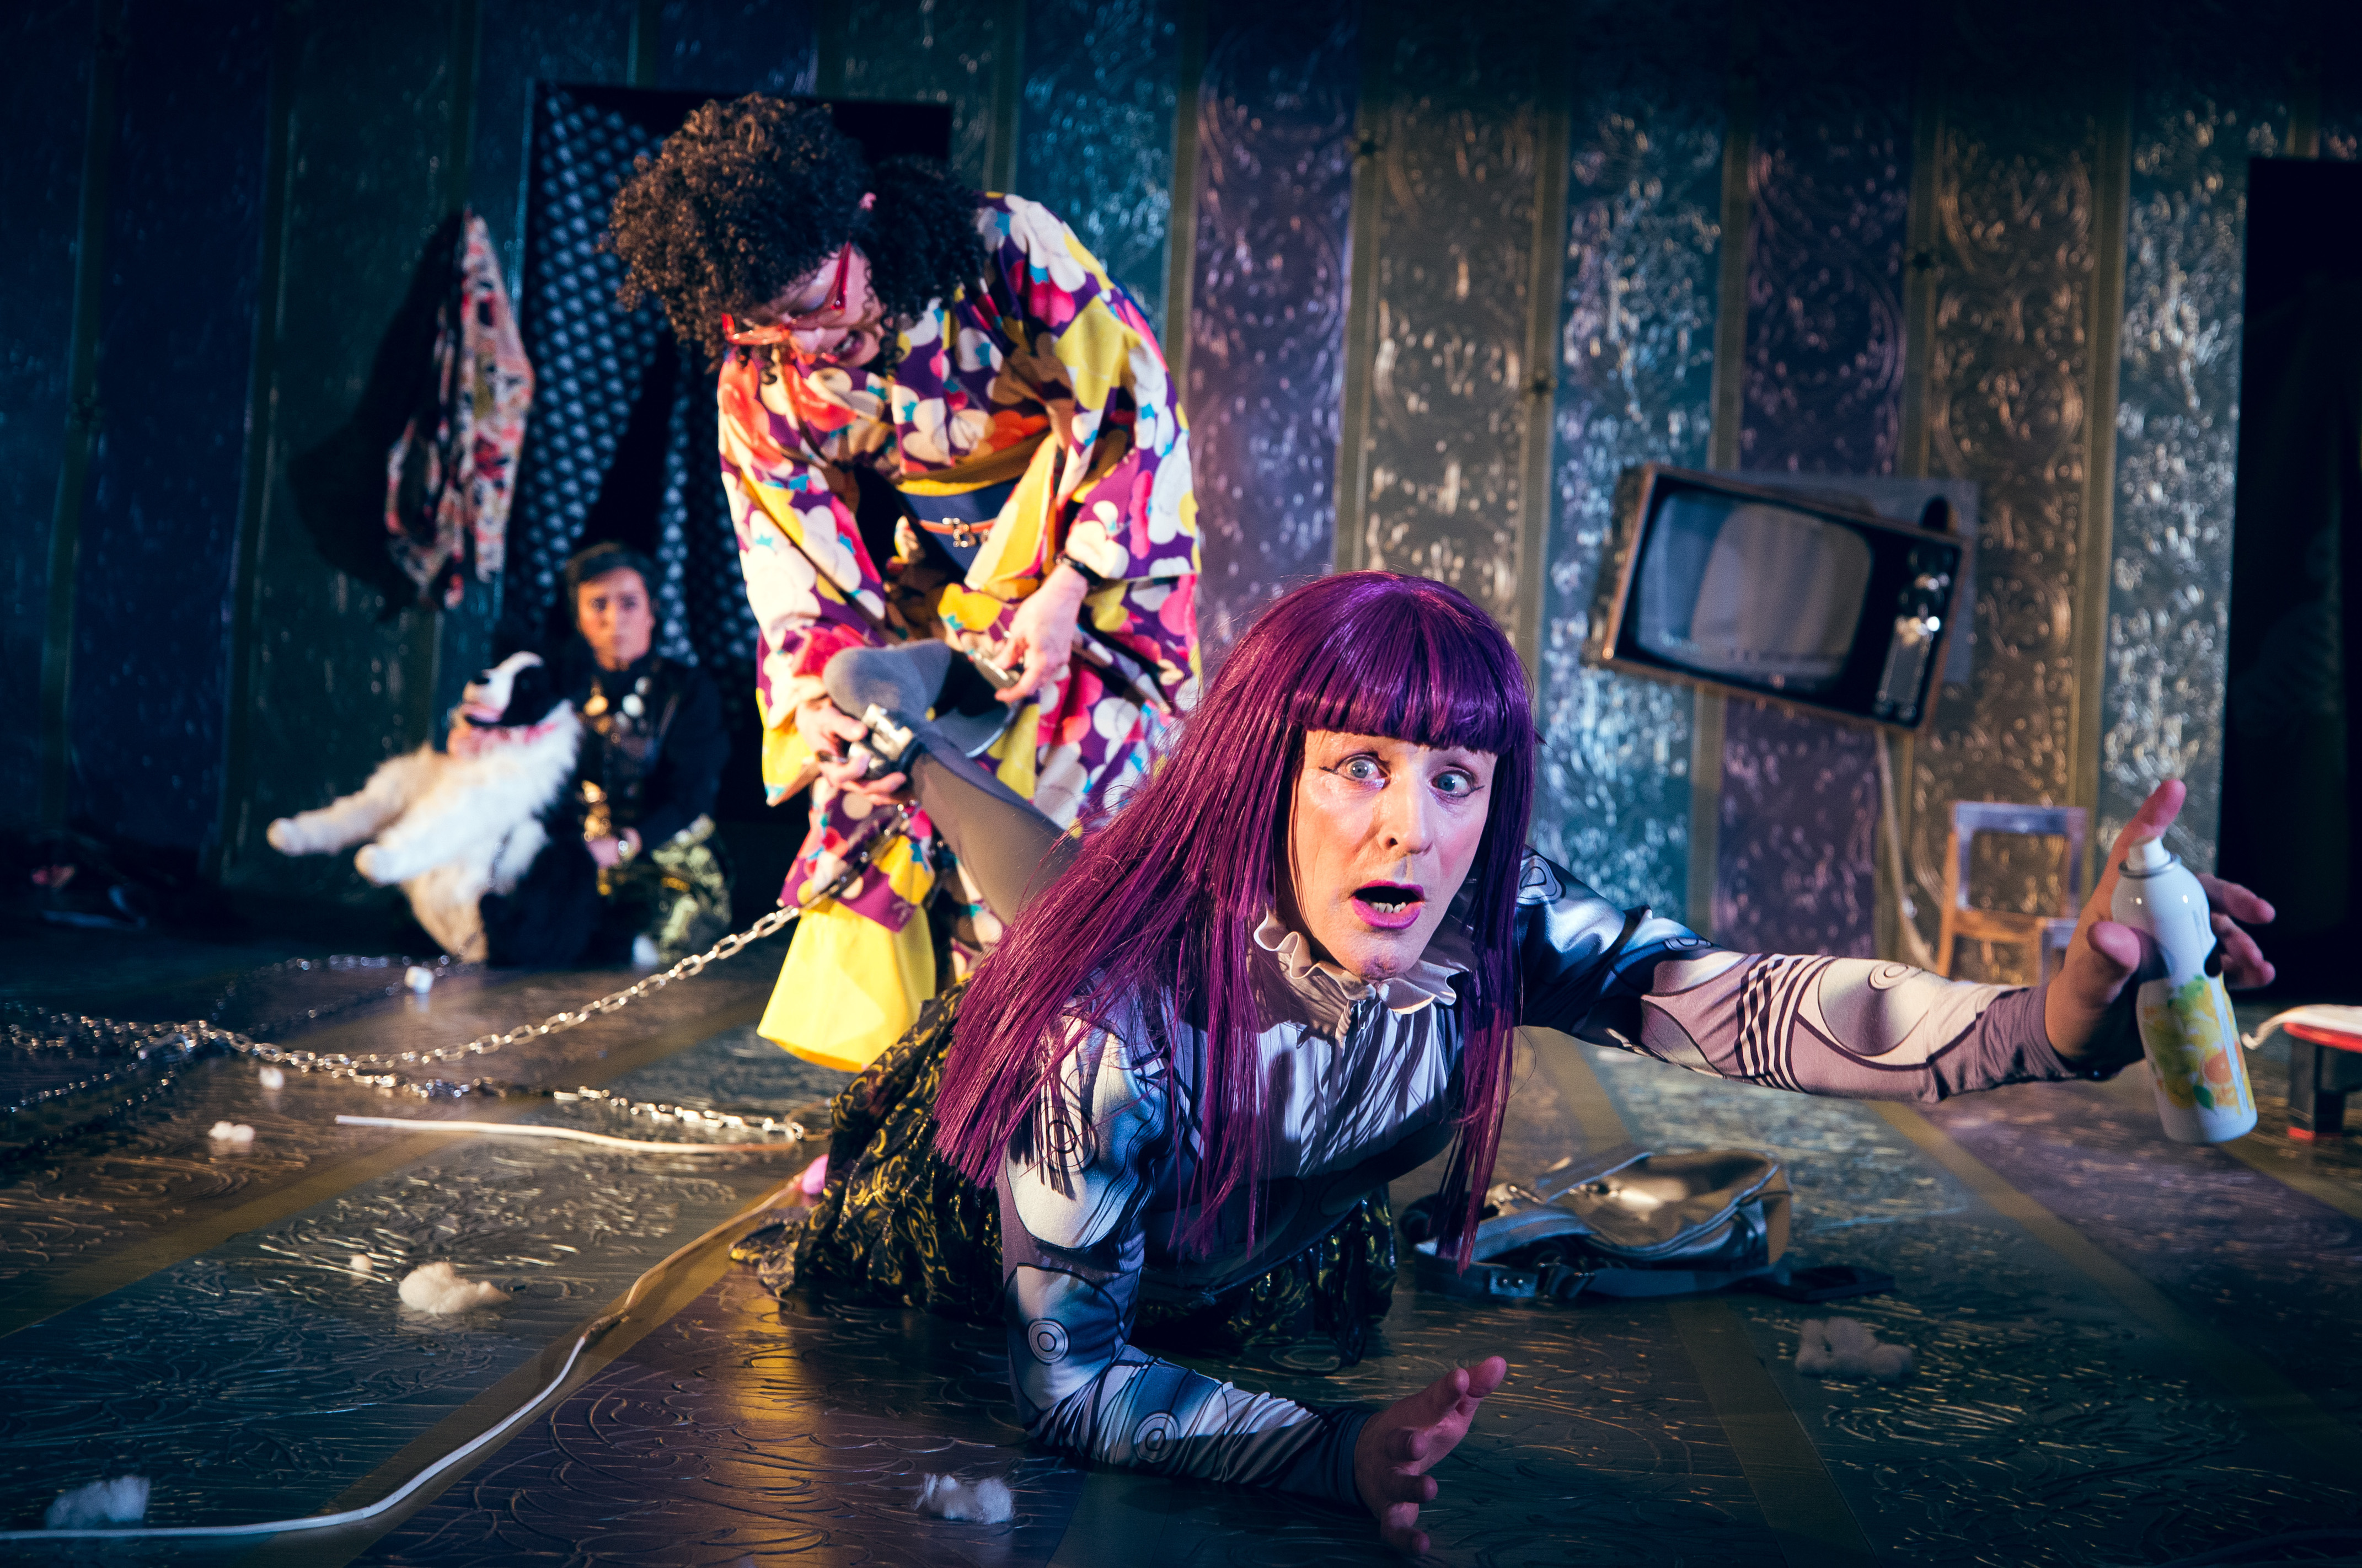 a performer in a purple wig in crawling toward the camera